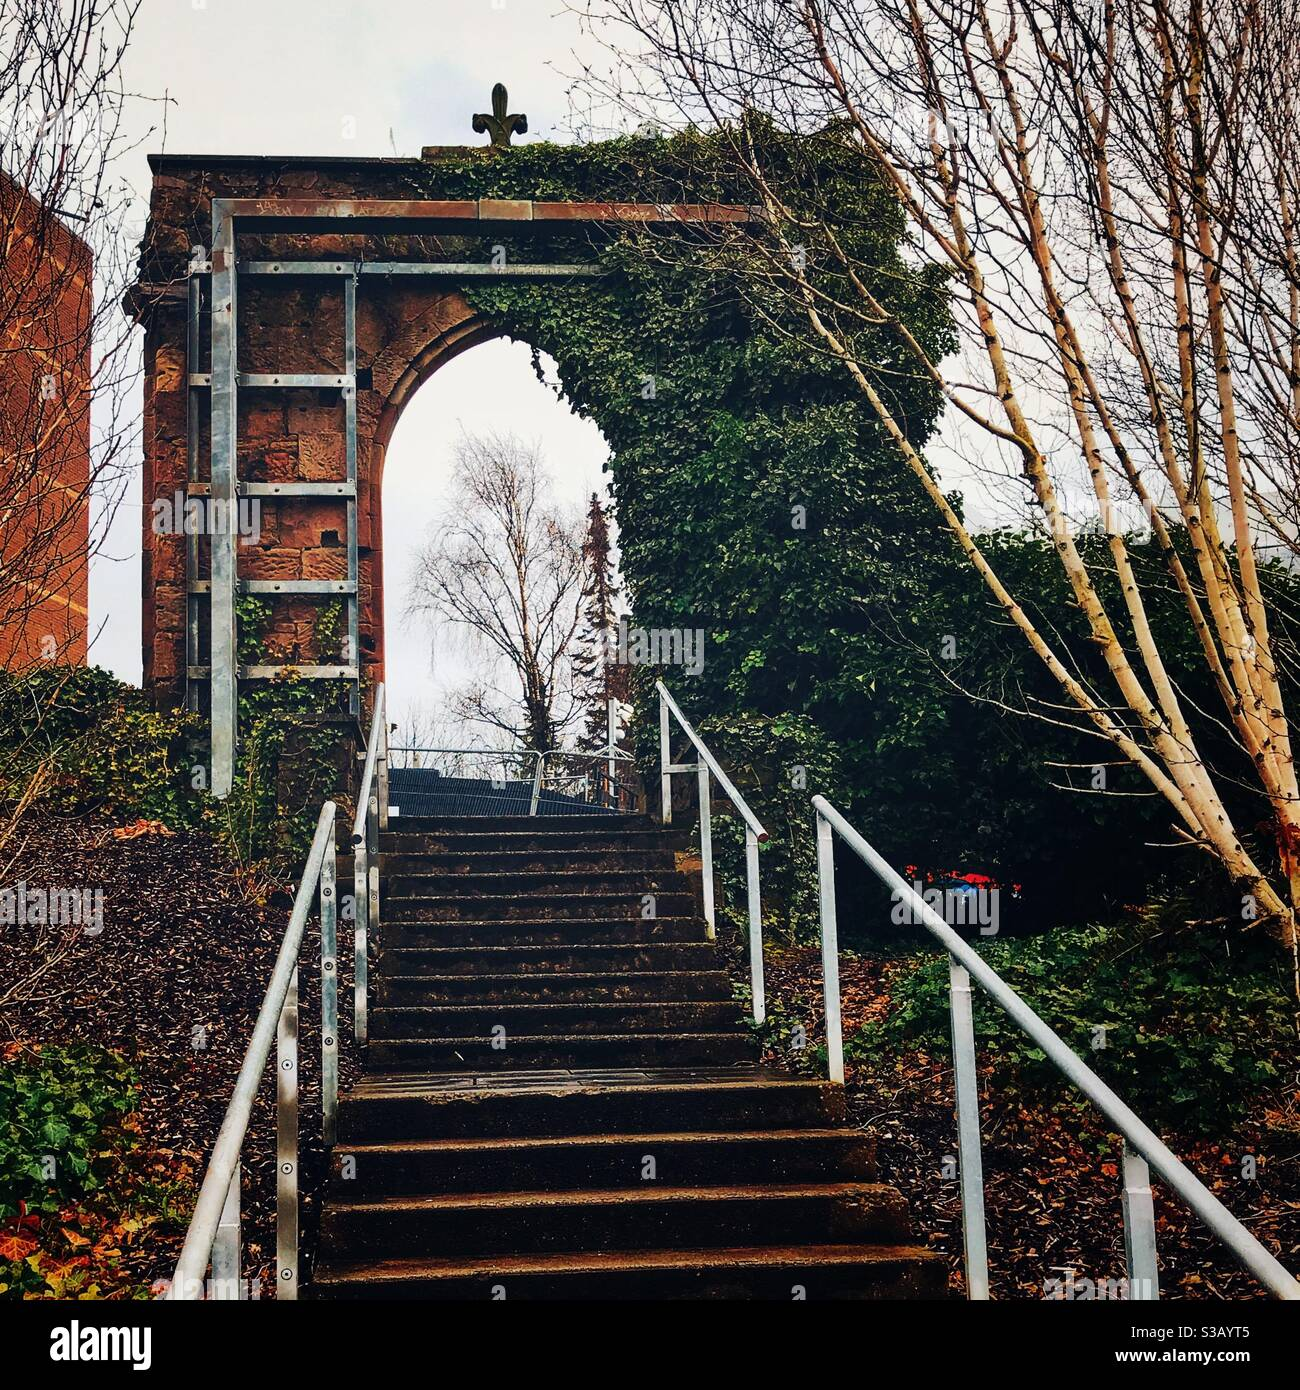 North Portland Street Arch in Rottenrow Gardens, Glasgow, Scotland. Stock Photo